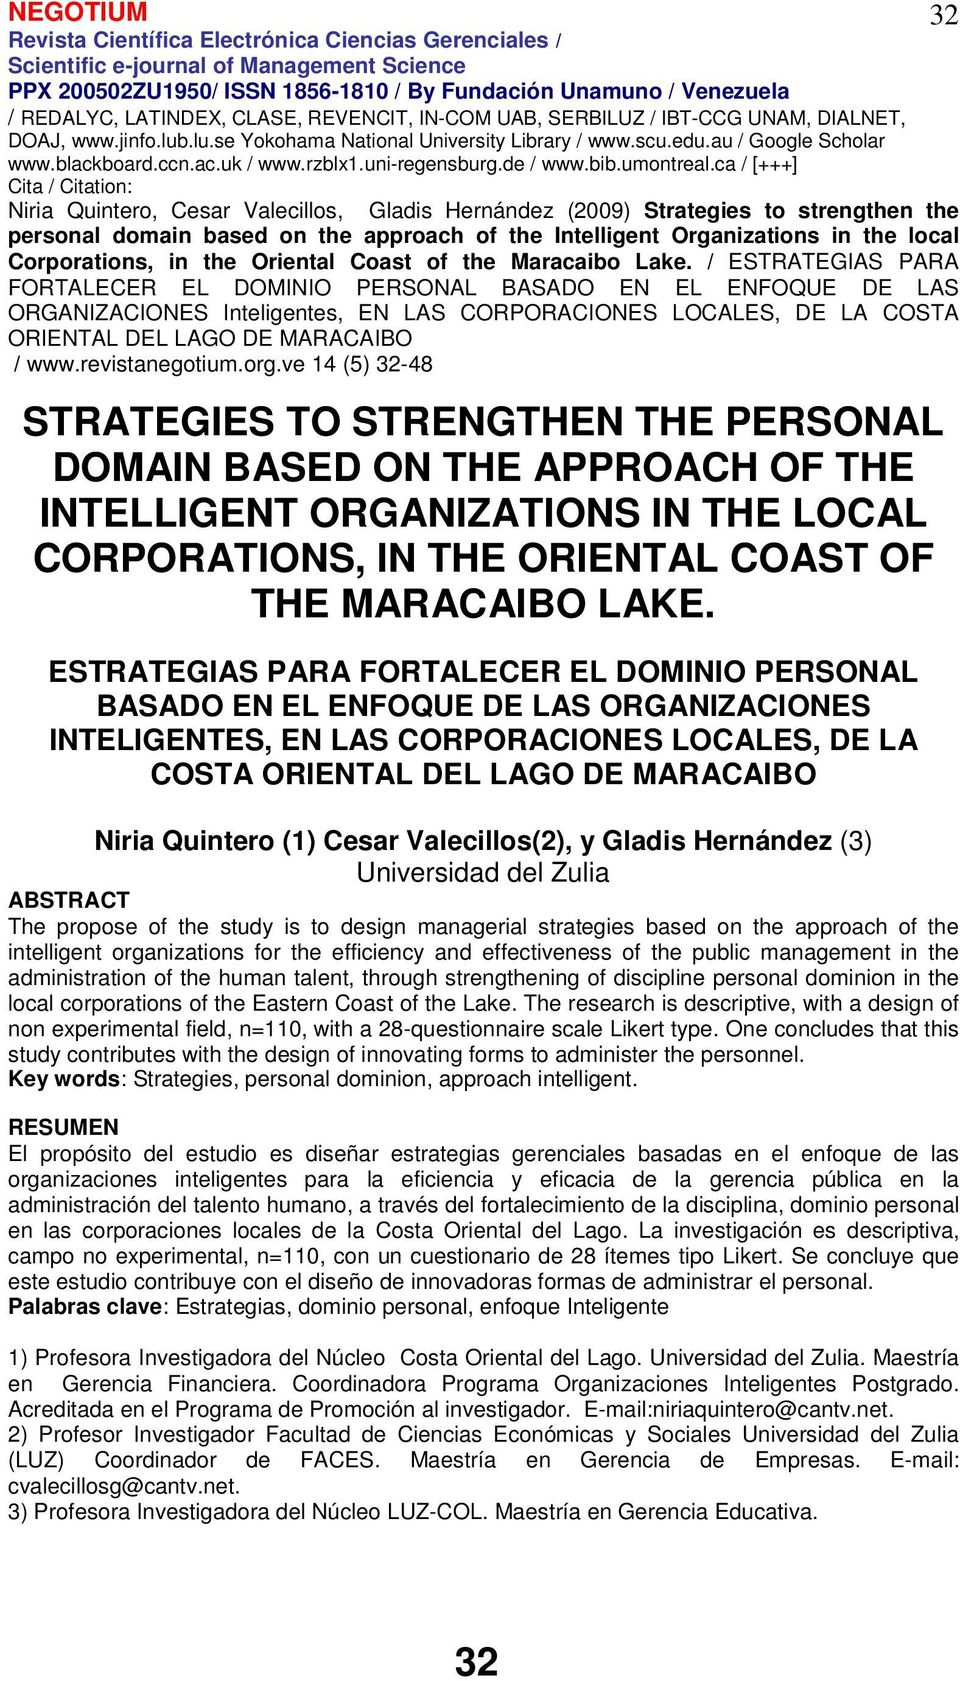 Hernández (3) Universidad del Zulia ABSTRACT The propose of the study is to design managerial strategies based on the approach of the intelligent organizations for the efficiency and effectiveness of